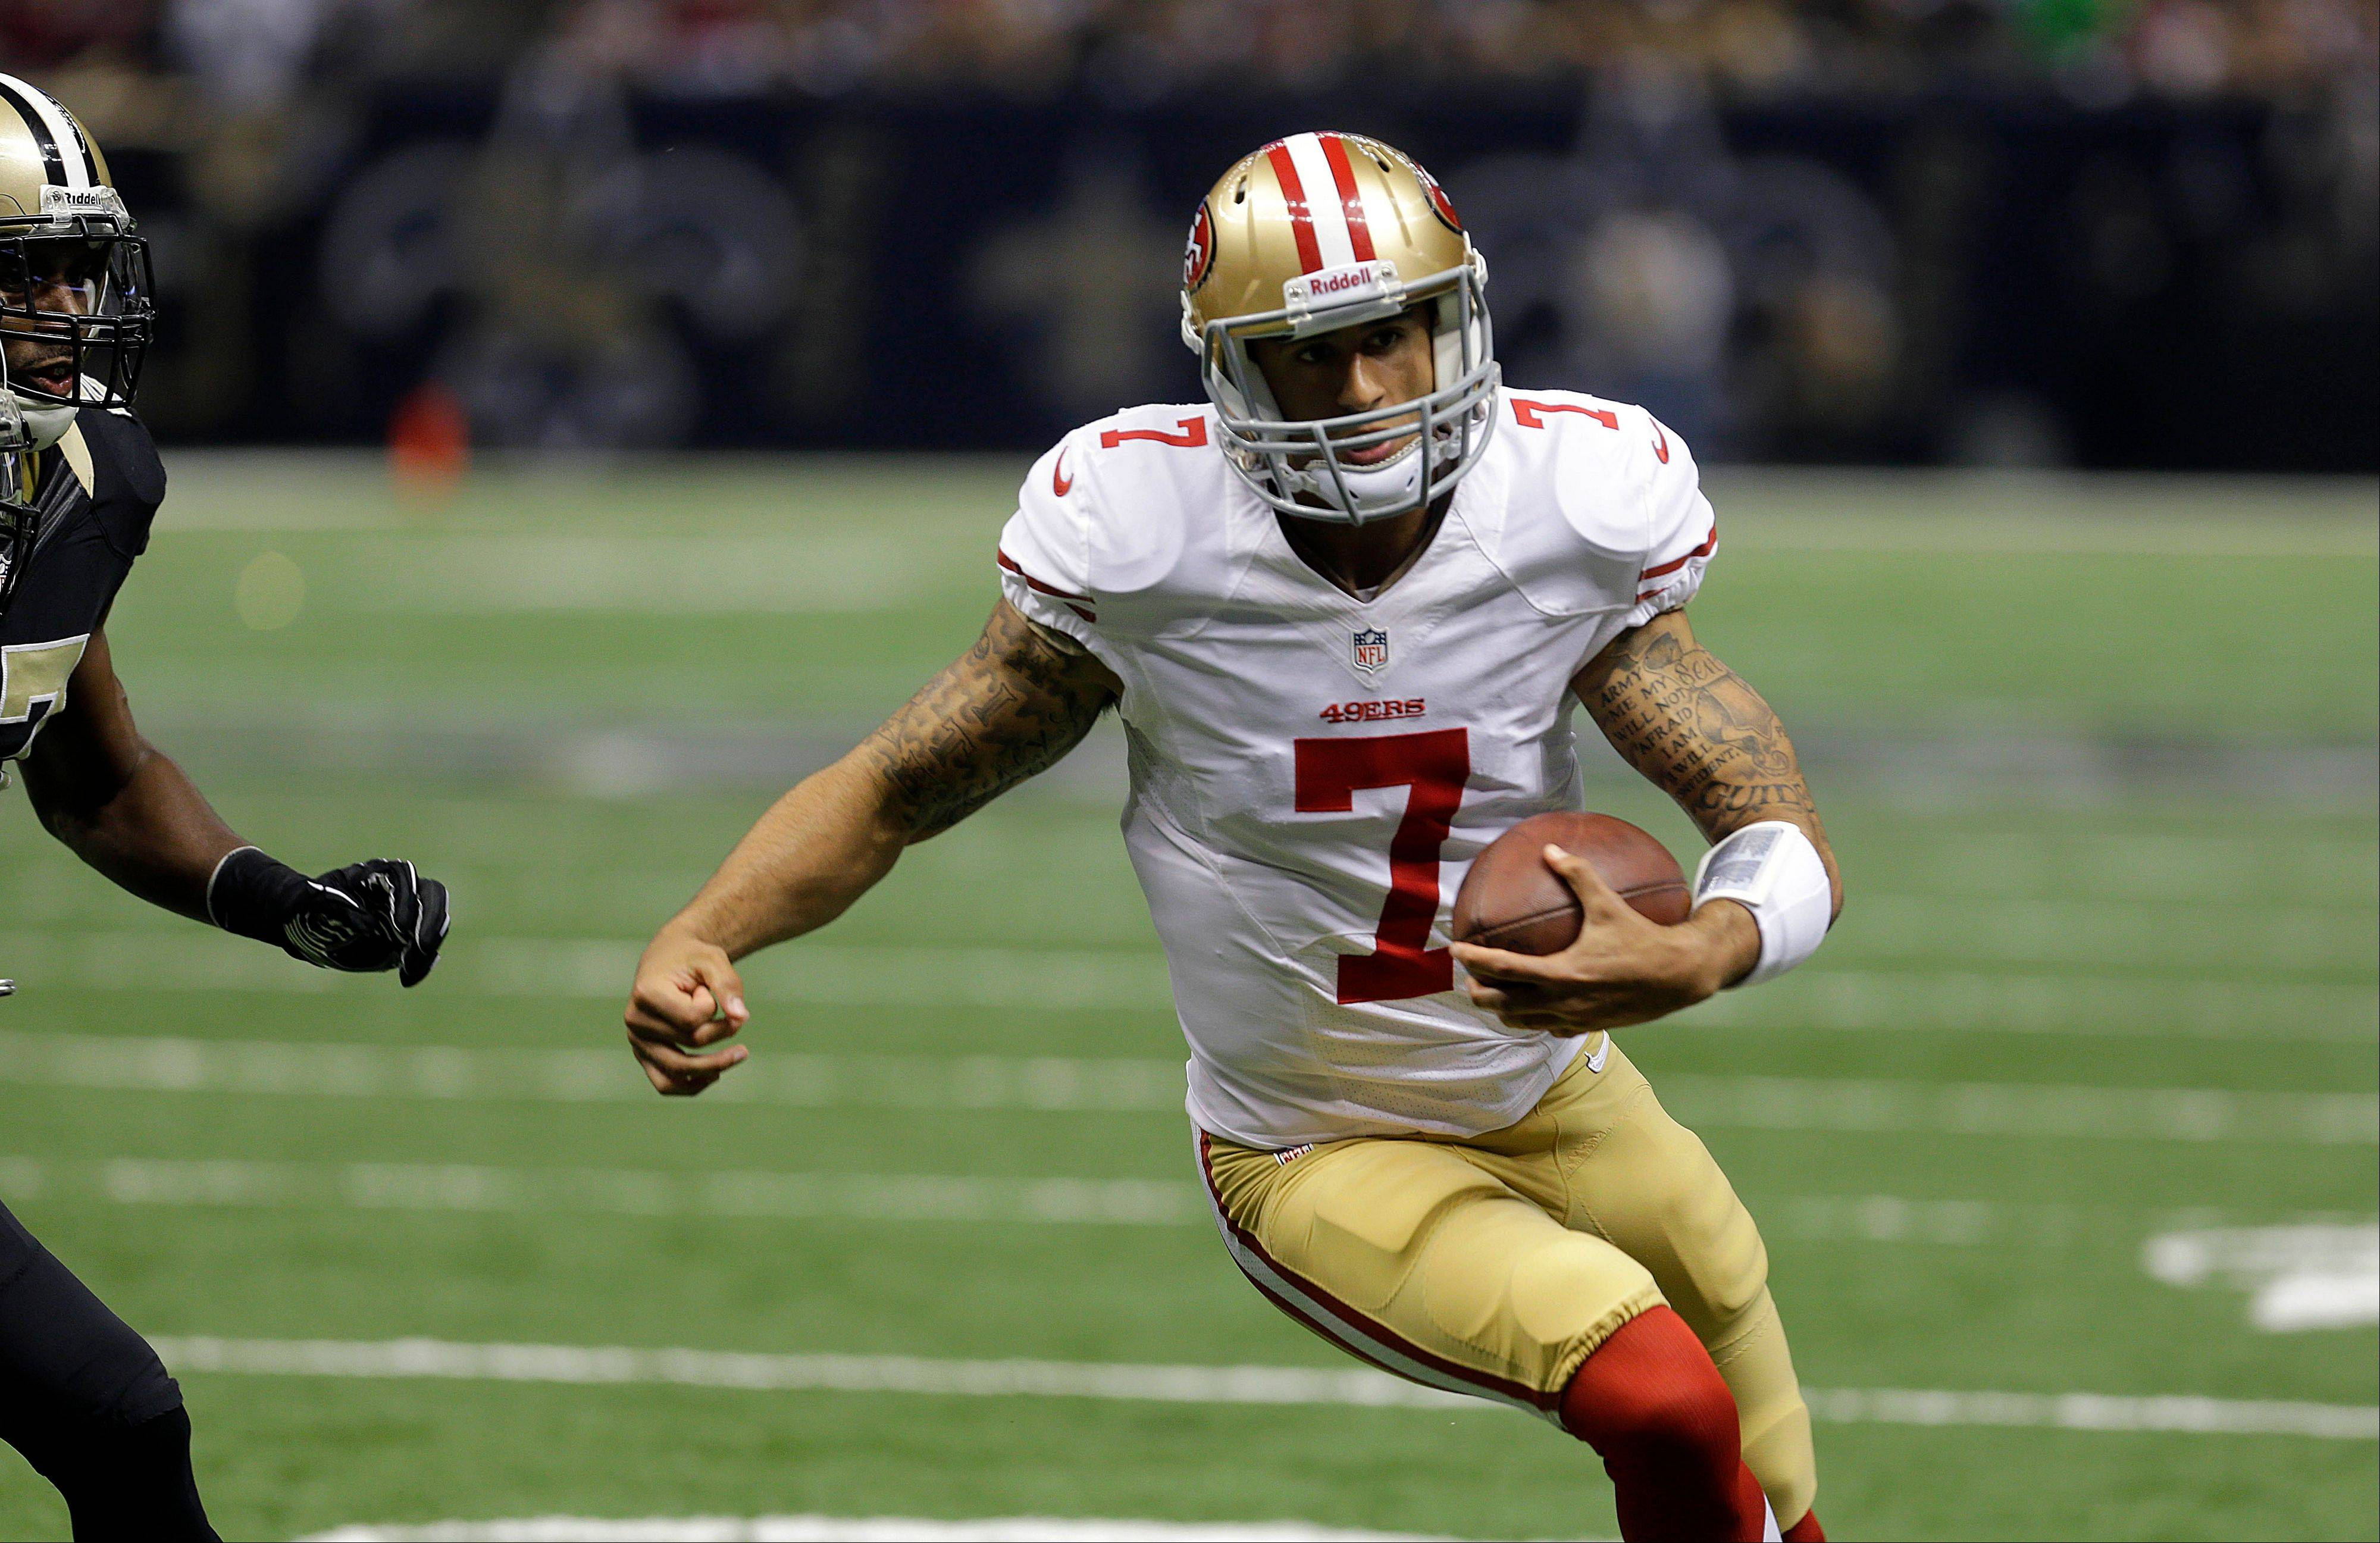 San Francisco 49ers quarterback Colin Kaepernick (7) scrambles for a touchdown against the New Orleans Saints. Kaepernick has starred for the 49ers since starting quarterback Alex Smith went down with a concussion.